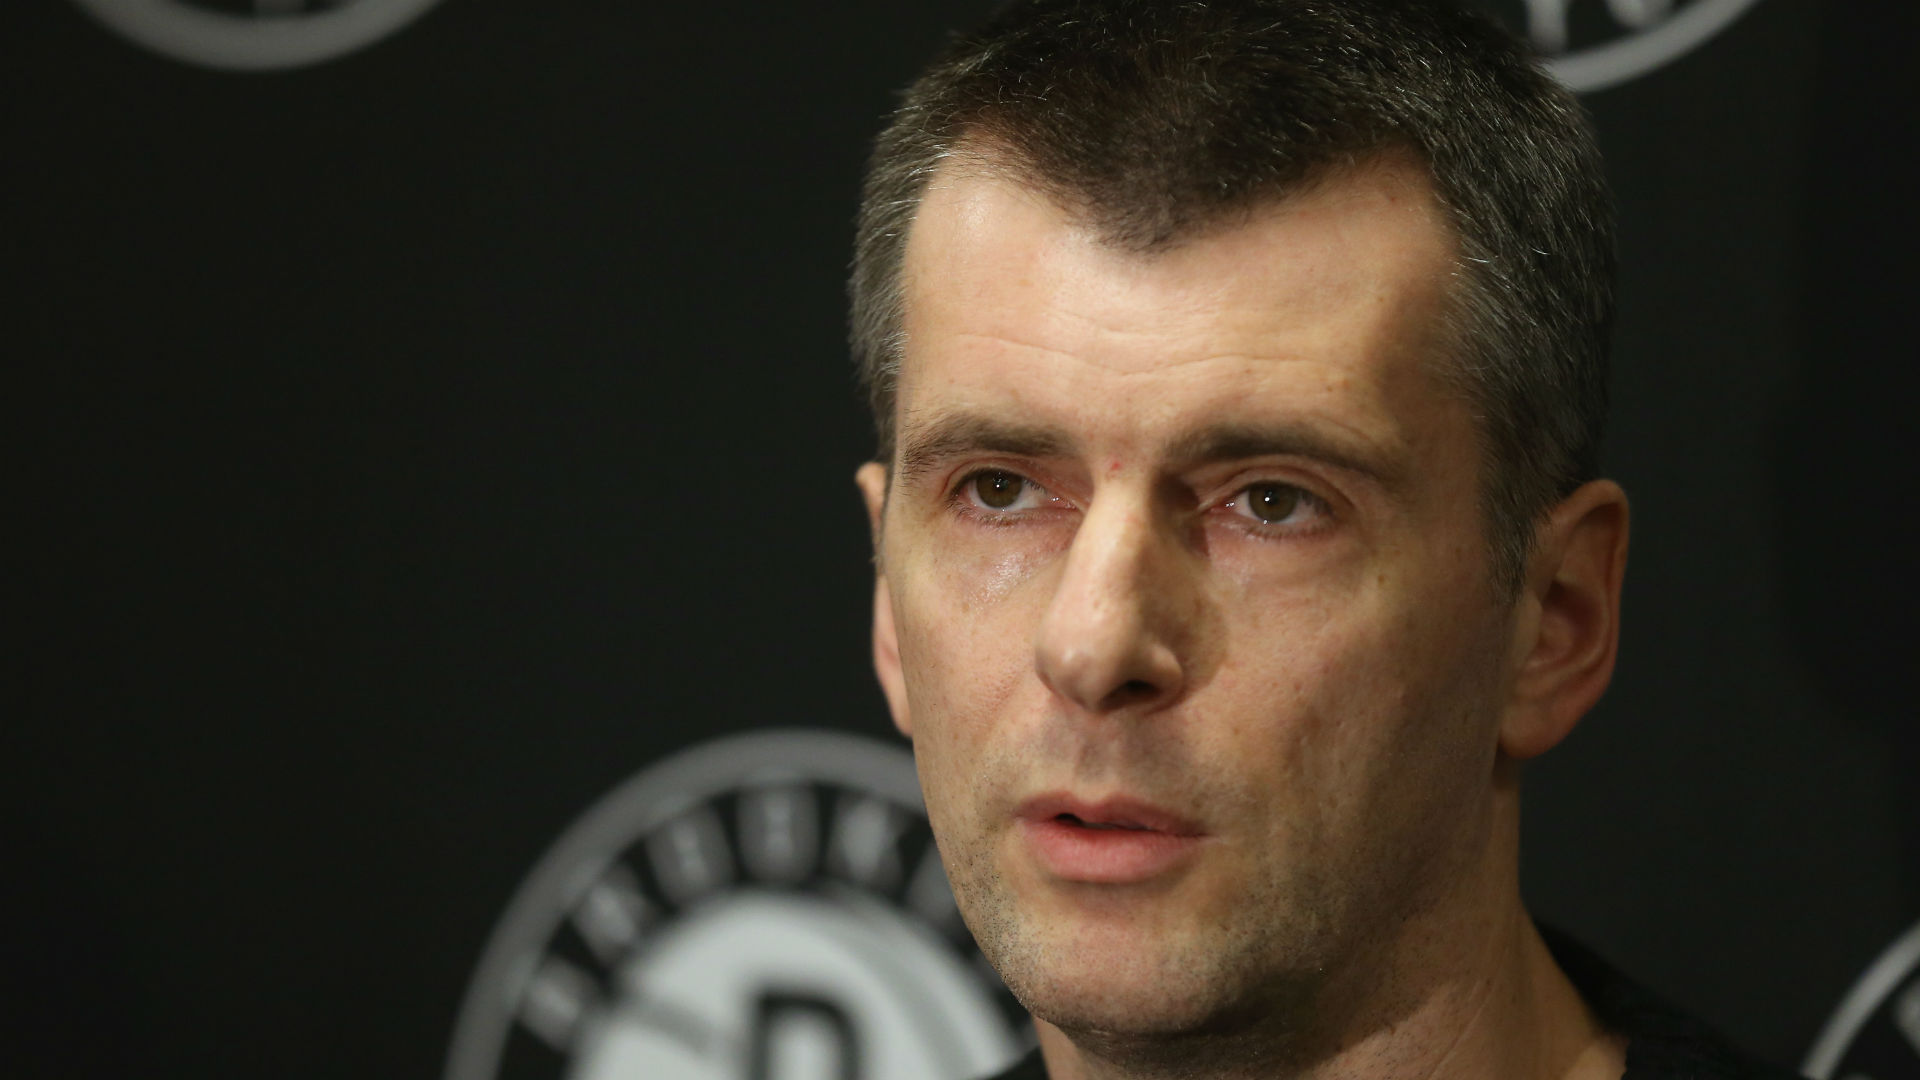 Mikhail Prokhorov accused of paying hush money in Olympic doping scandal; Nets owner denies claim